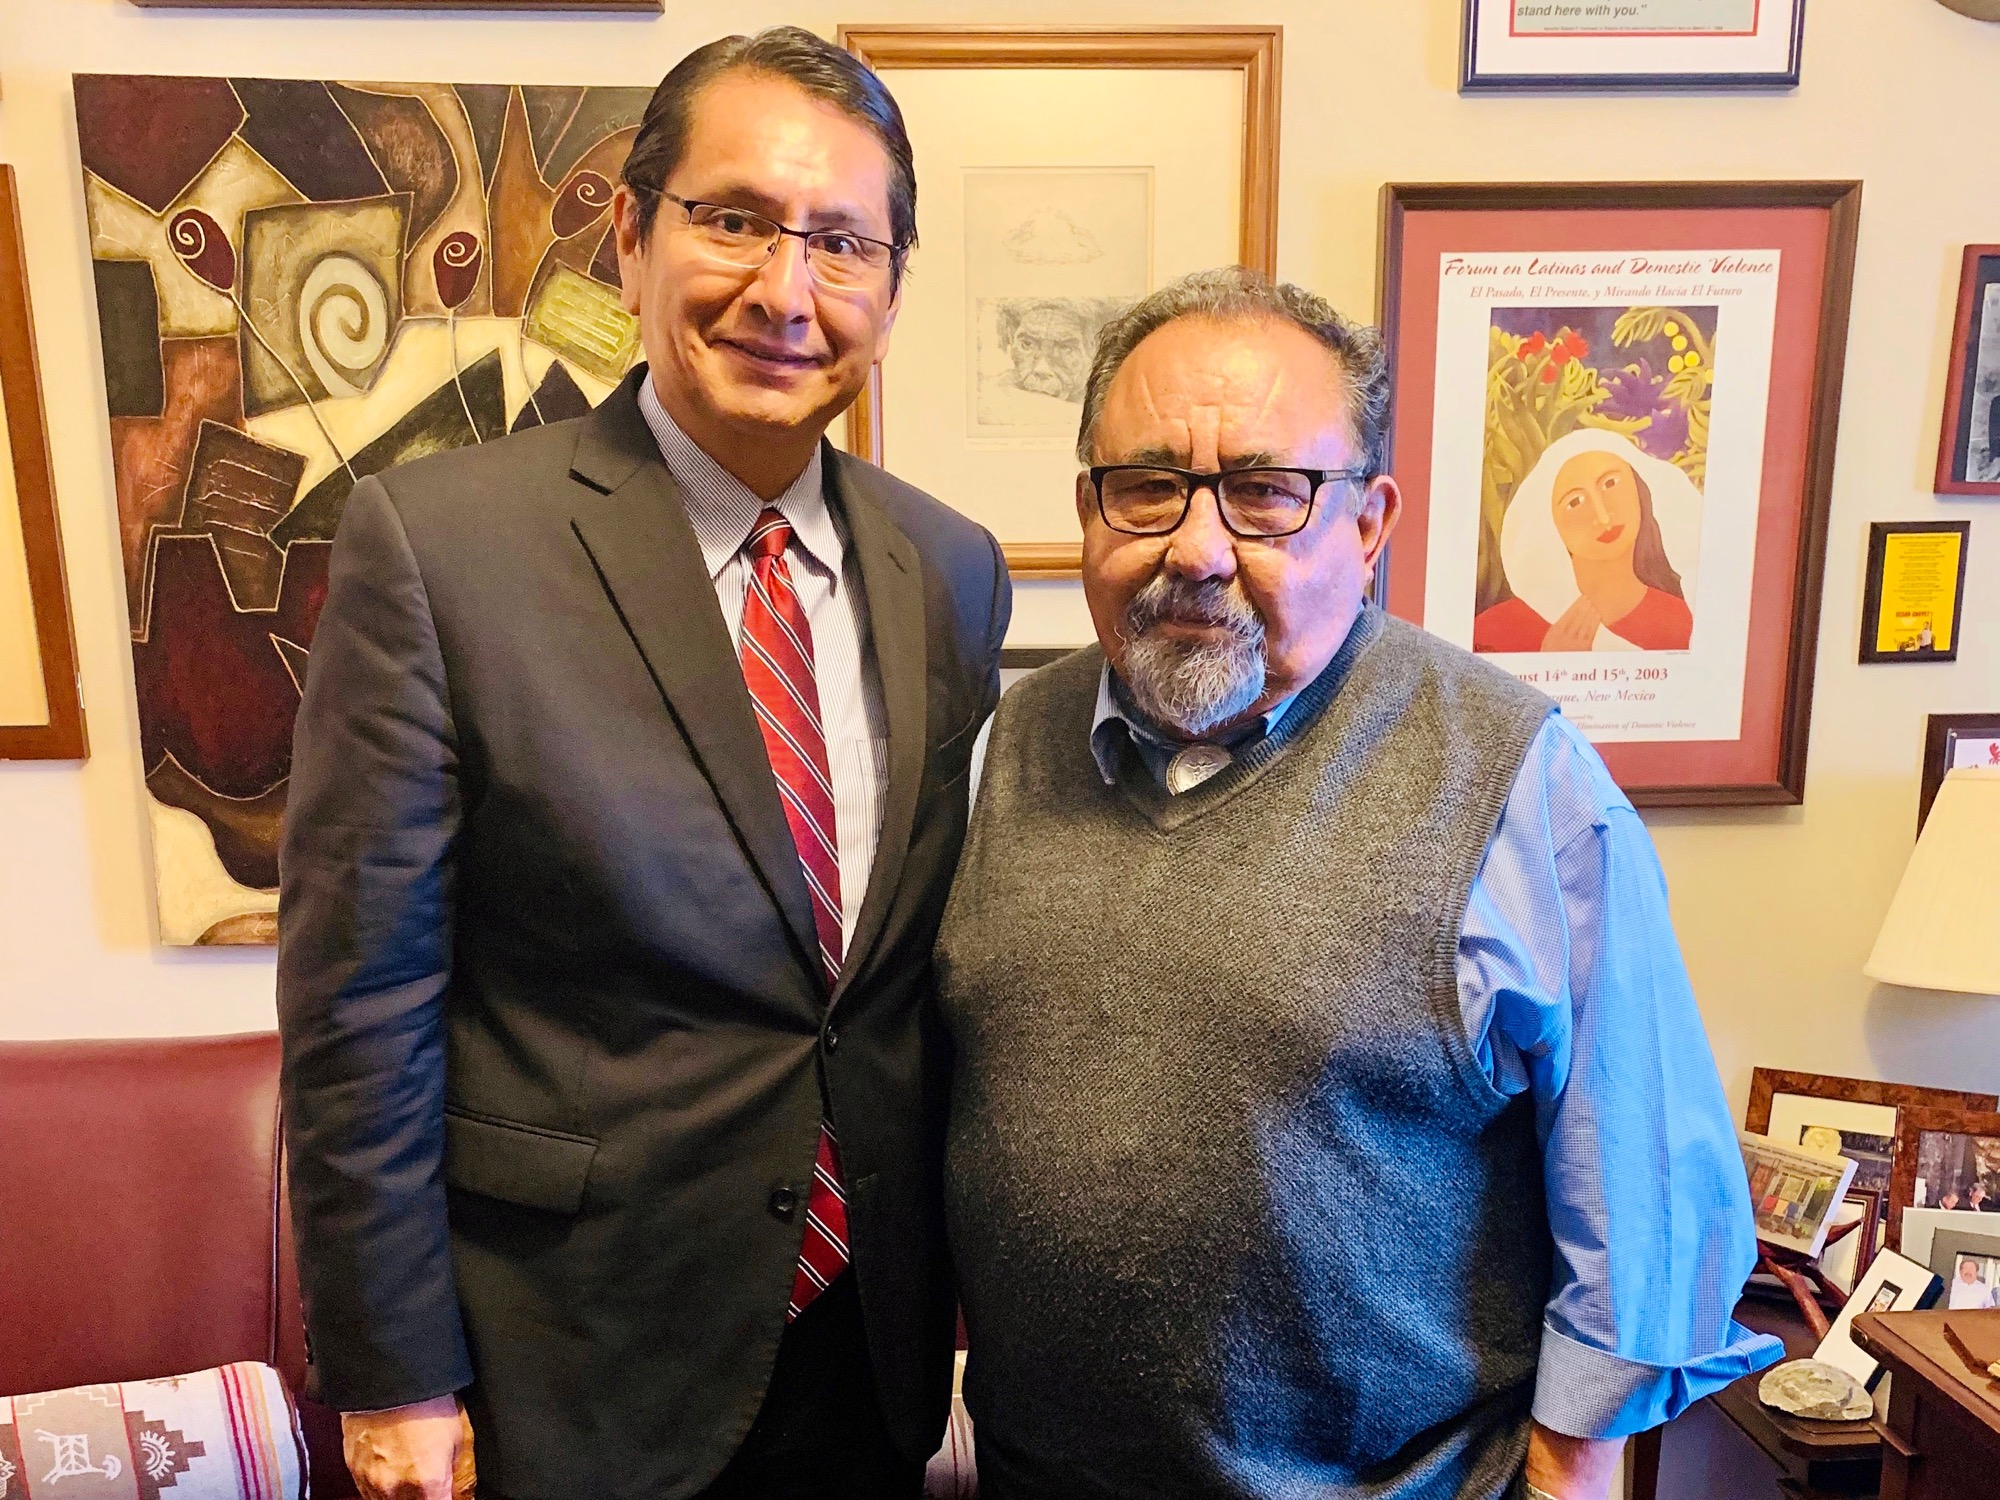 Navajo Nation welcomes key lawmaker to reservation for uranium mining forum